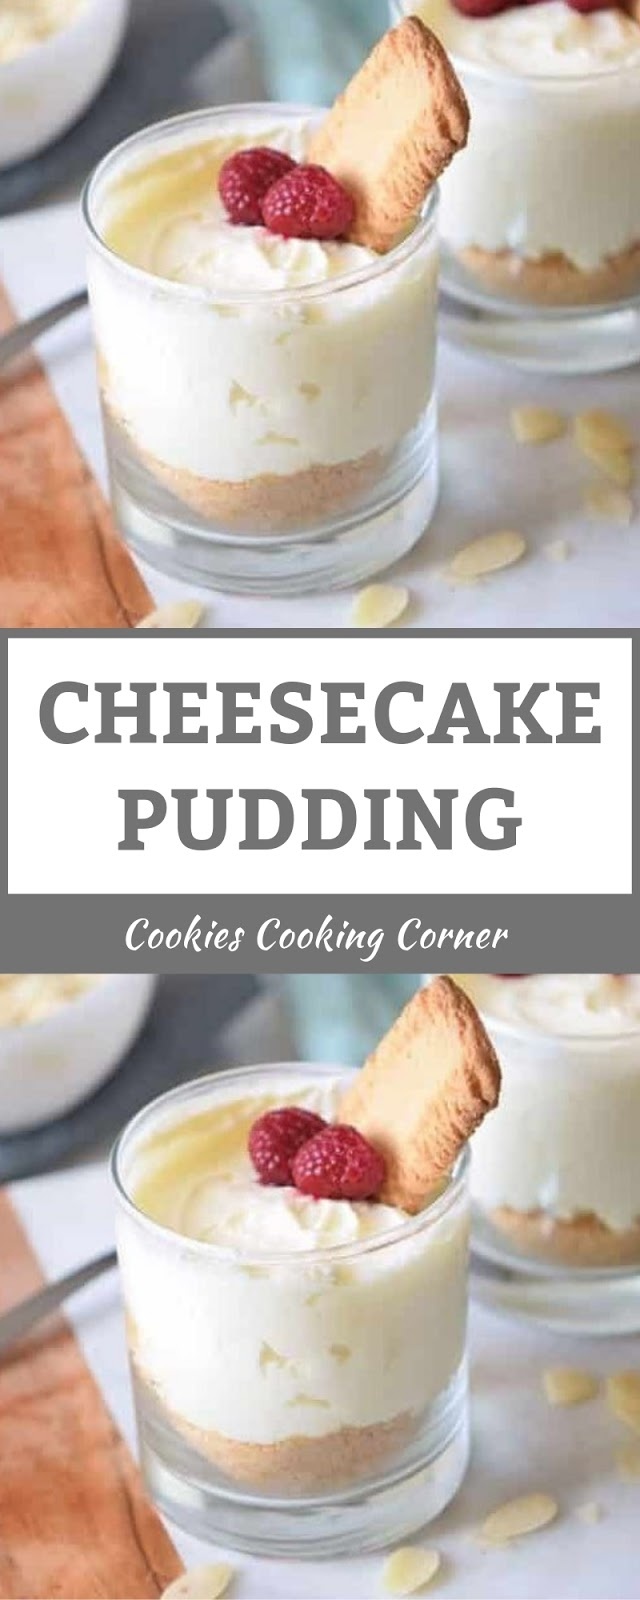 CHEESECAKE PUDDING